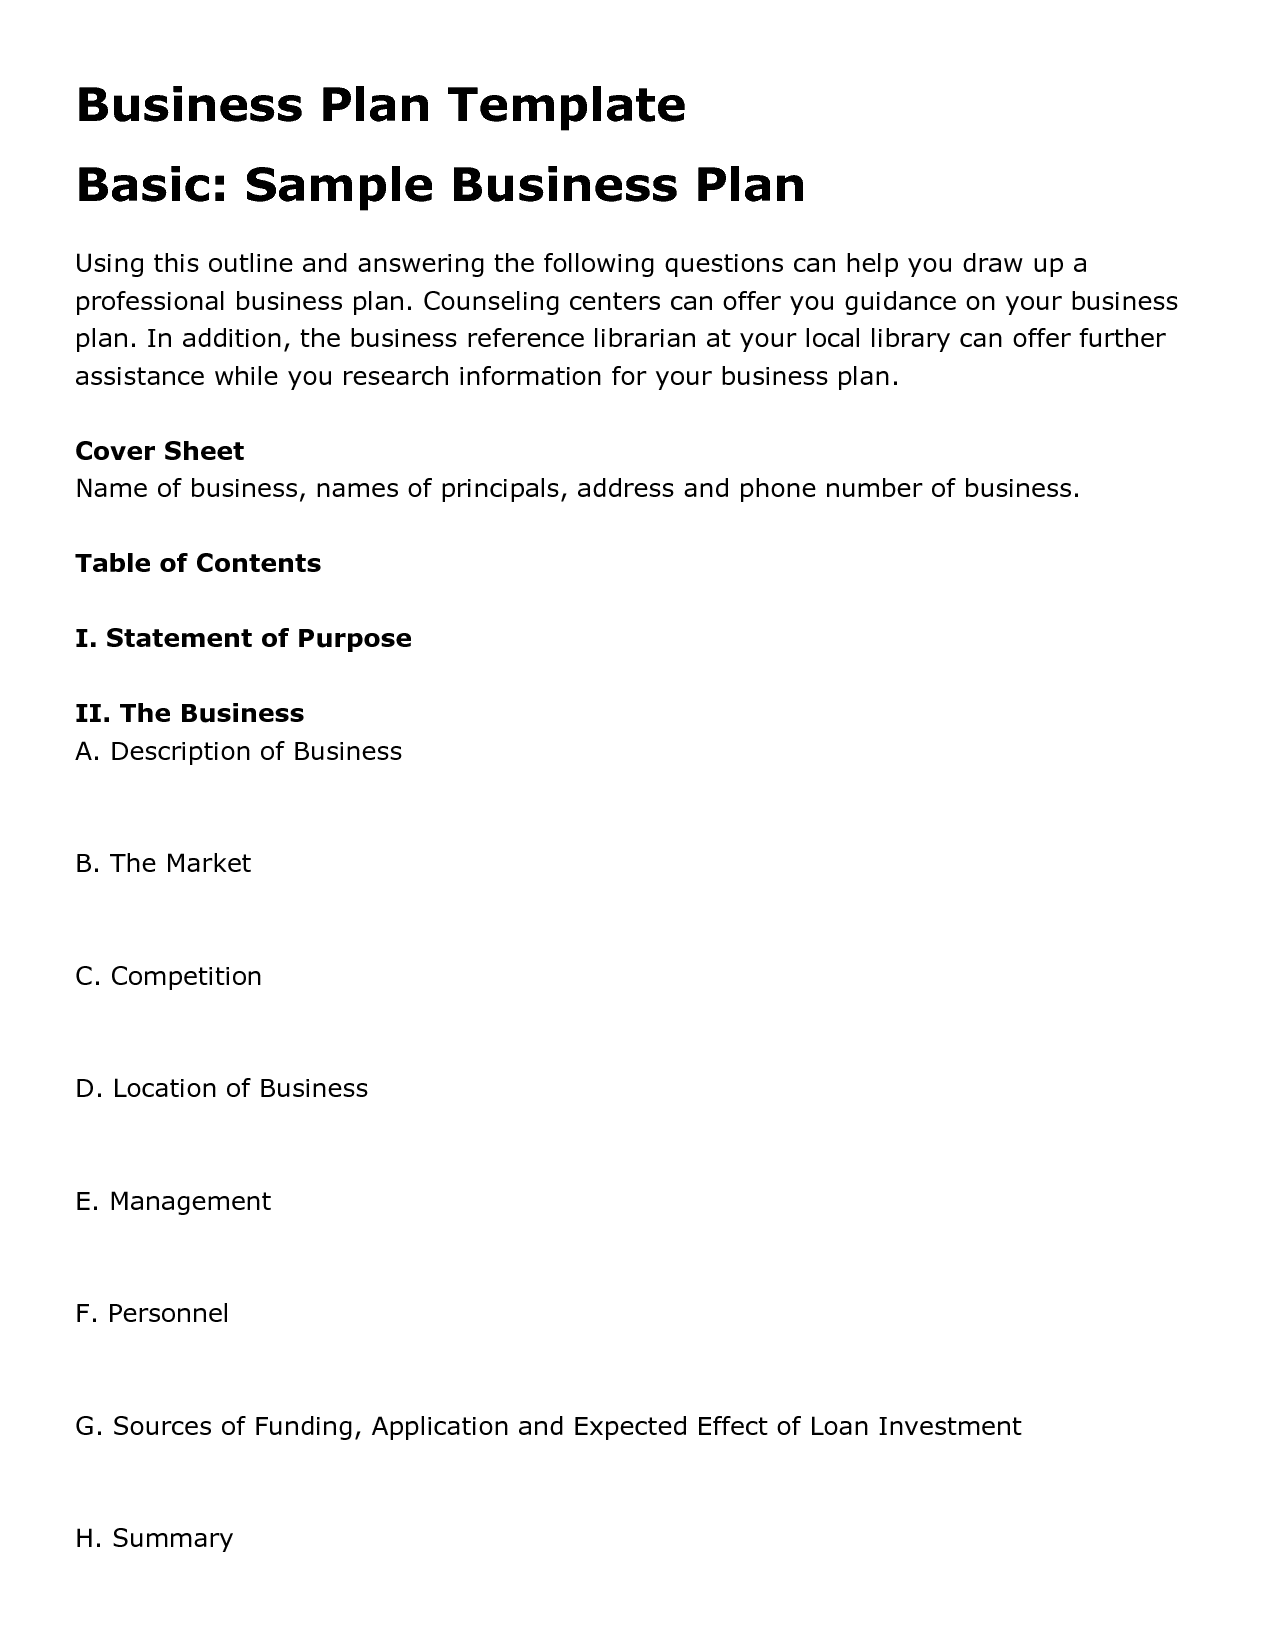 10+ Quality Control Plan Templates – Free Sample, Example, Format Download!